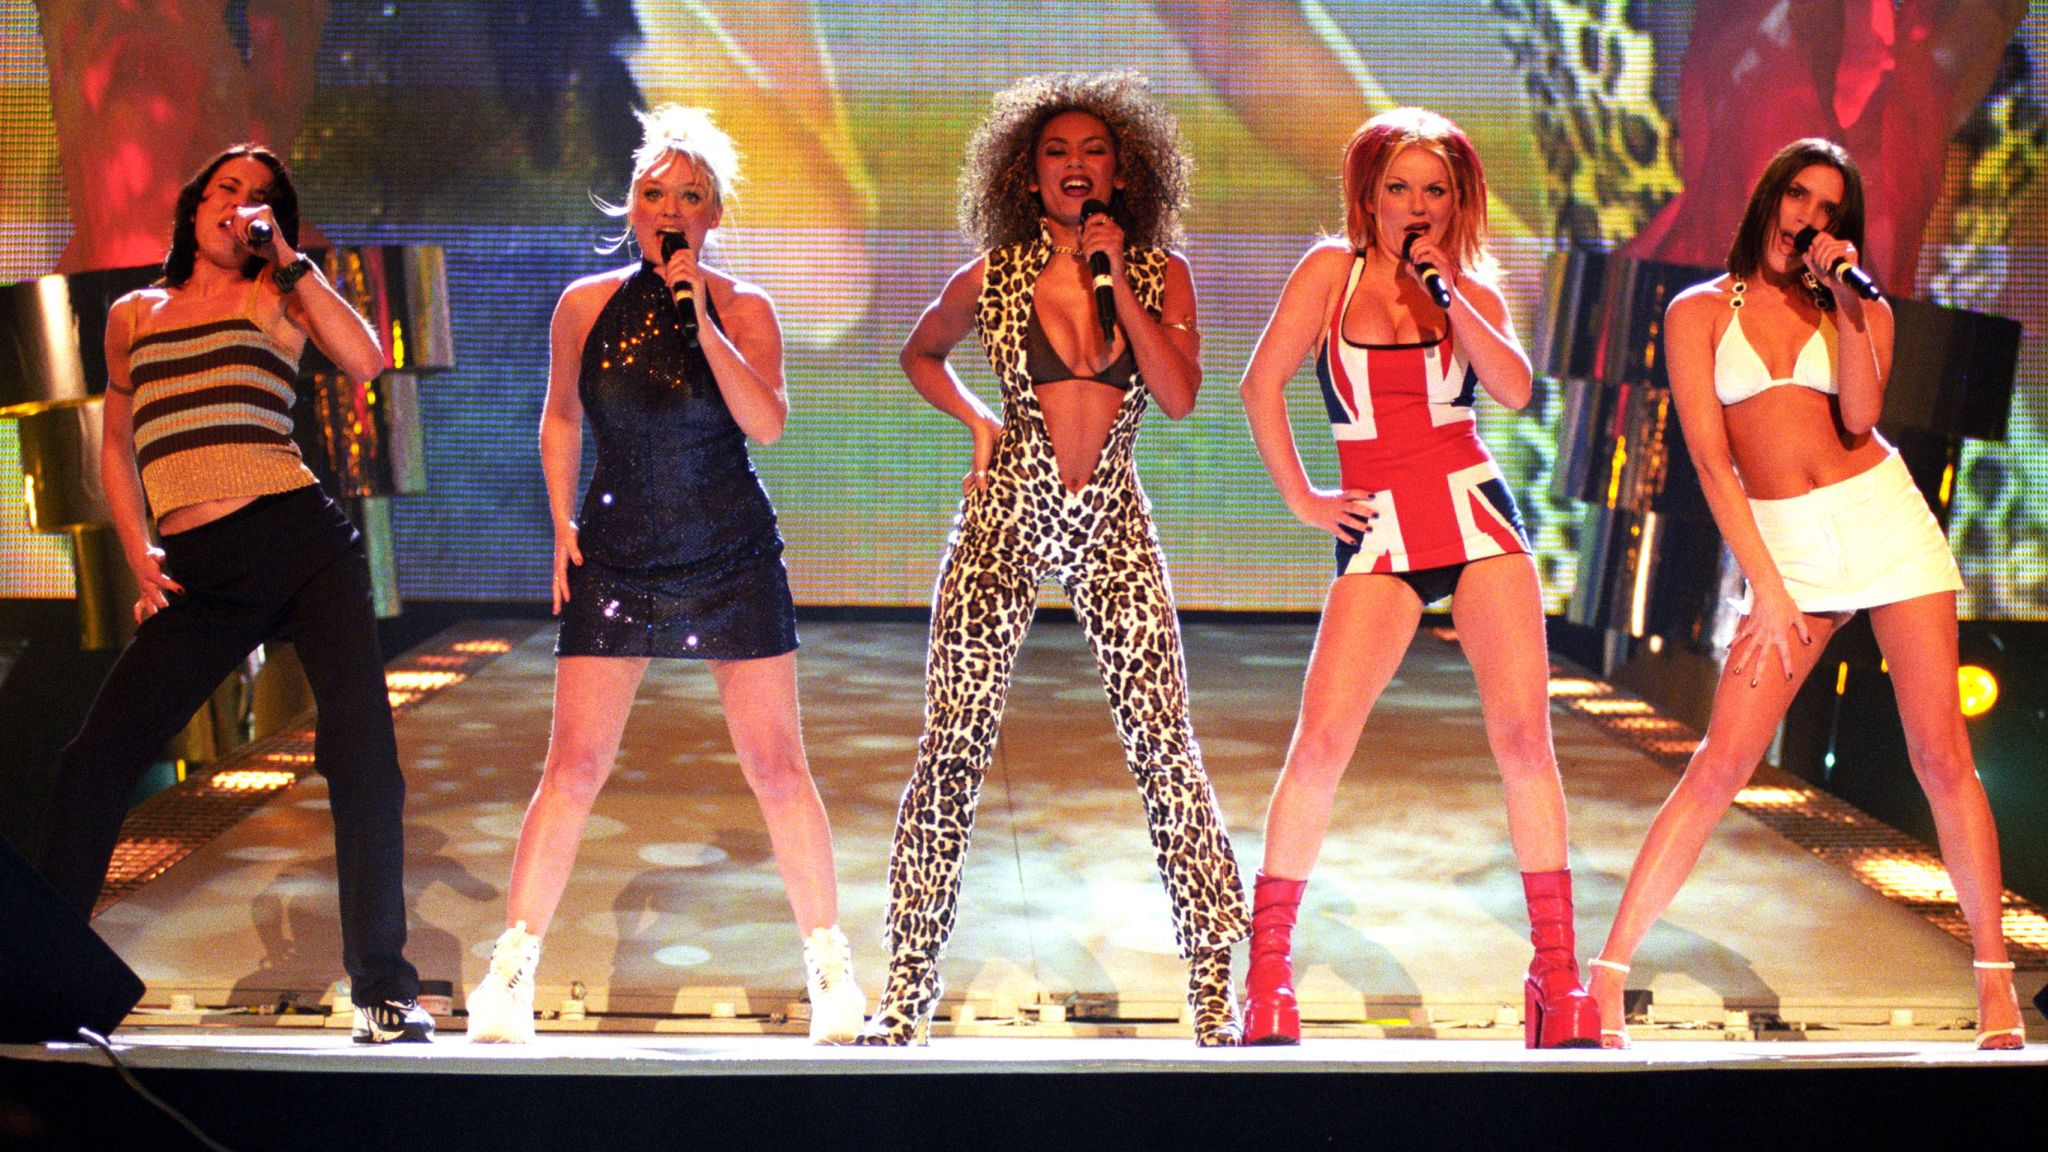 The Spice Girls in 1997. Pic: Alan Davidson/Shutterstock